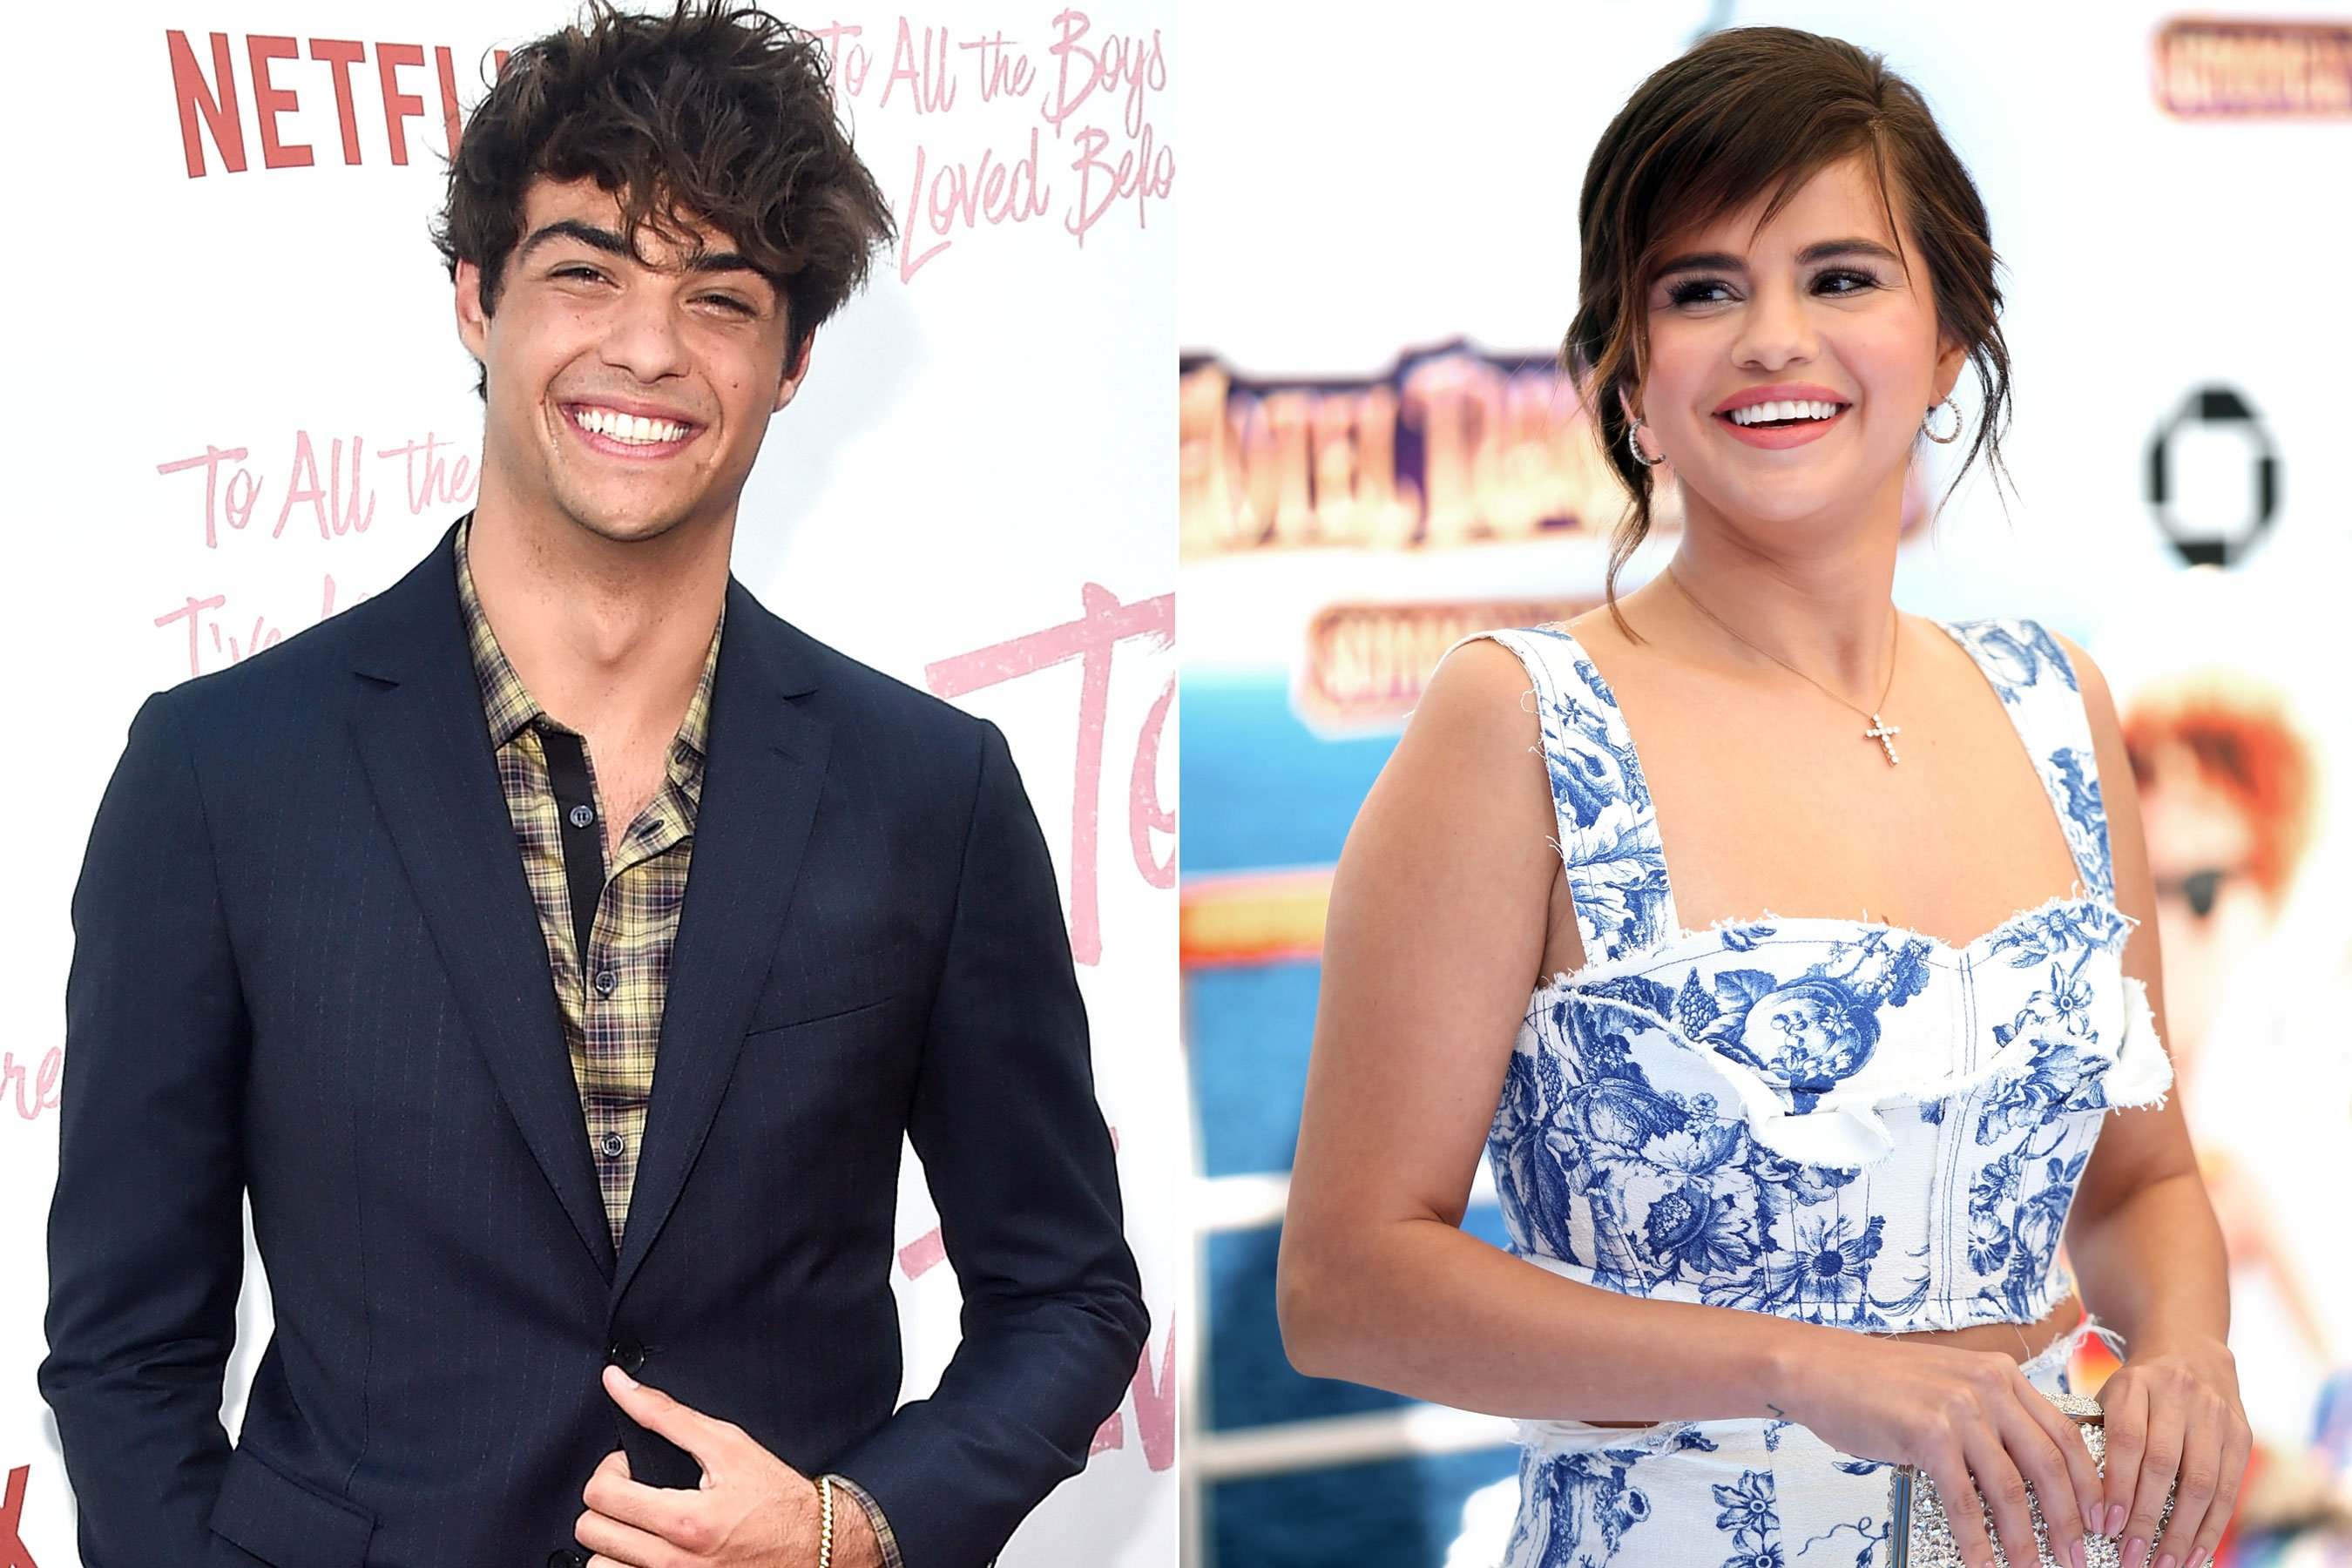 Noah Centineo Gushes Over His Celeb Crush Selena Gomez on Instagram: 'She's Gorgeous'